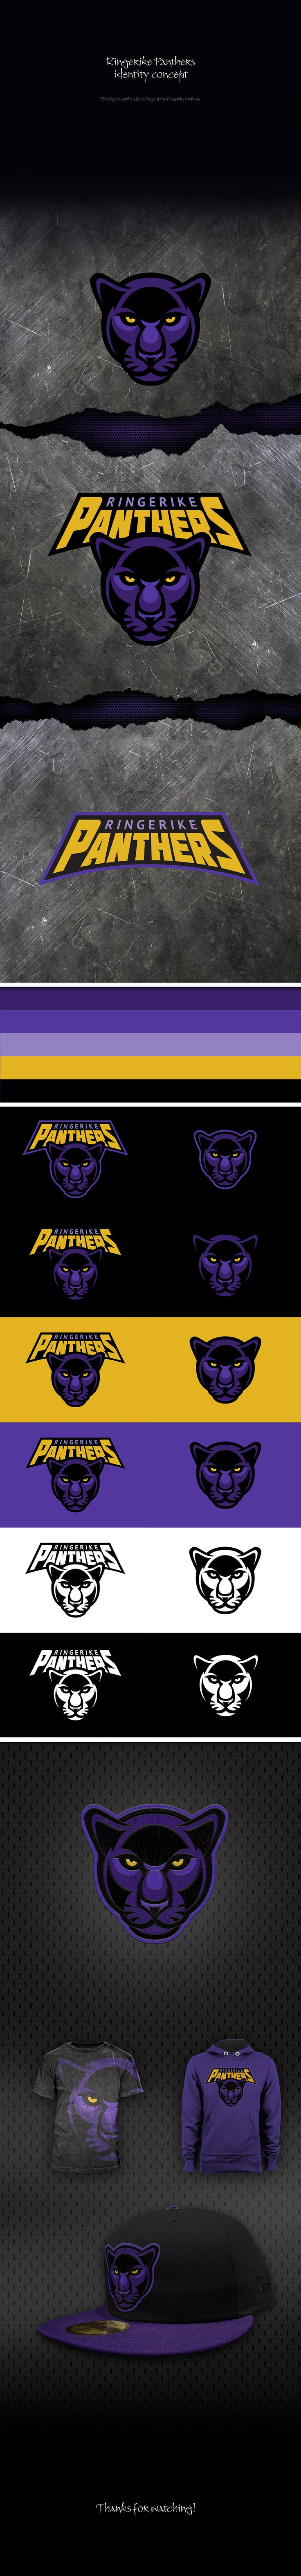 190 Best Images About TEAM LOGOS On Pinterest Sports